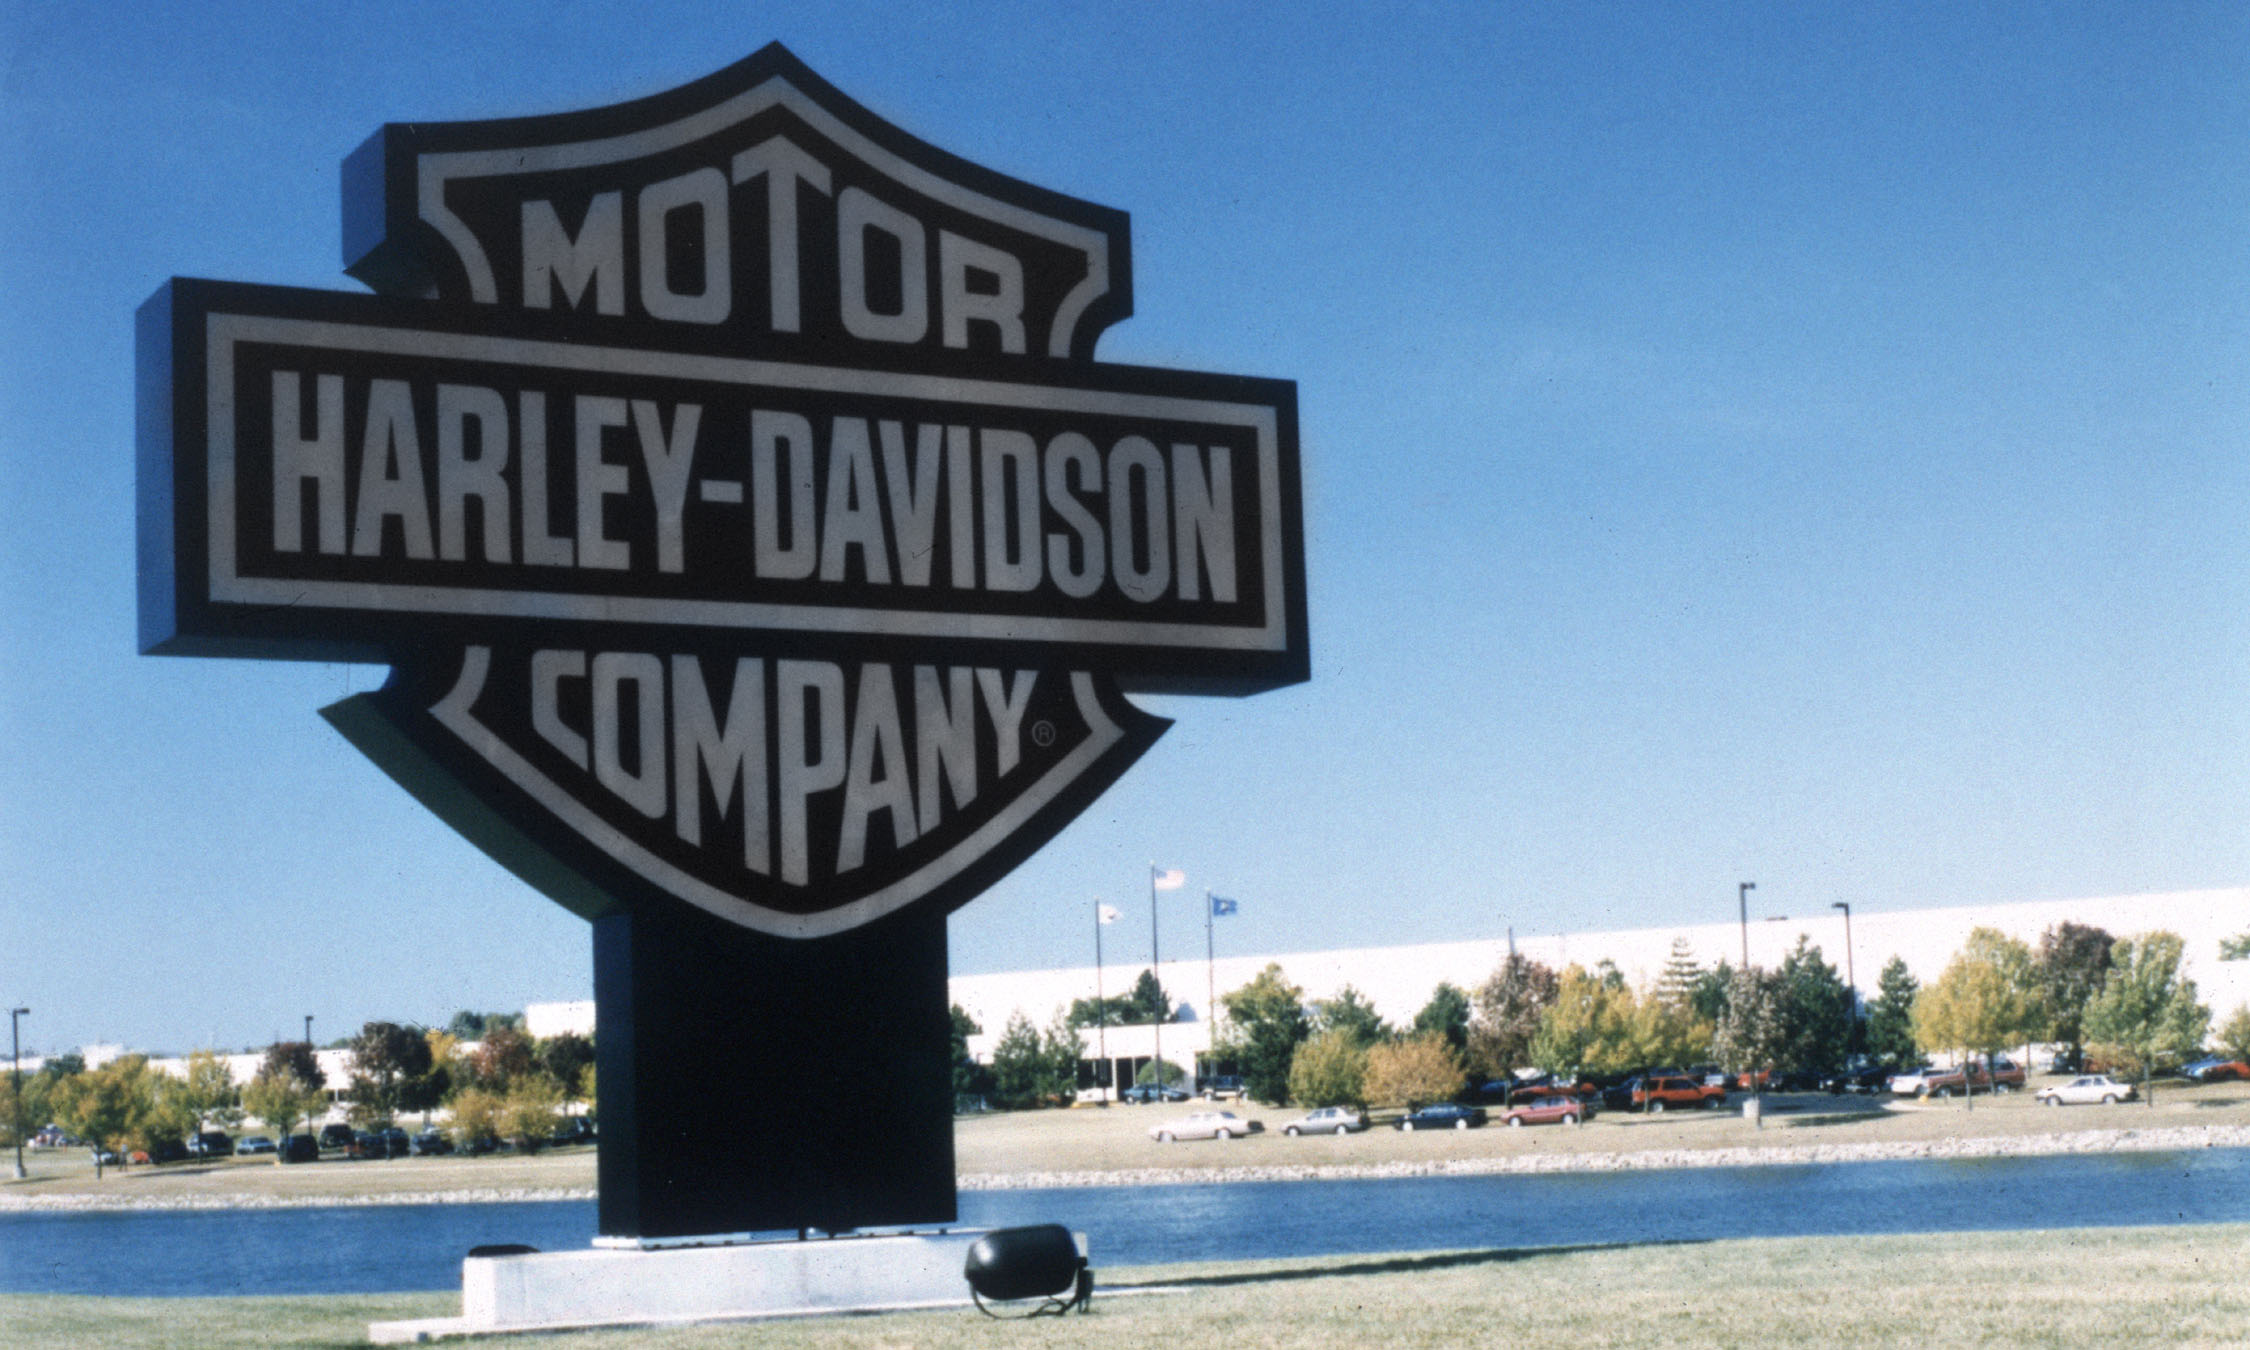 historical breakdown for the harley davidson company William harley and davidson brothers founded the company in 1903  people  enjoy riding motorcycles that were relatively reliable that didn't break down.